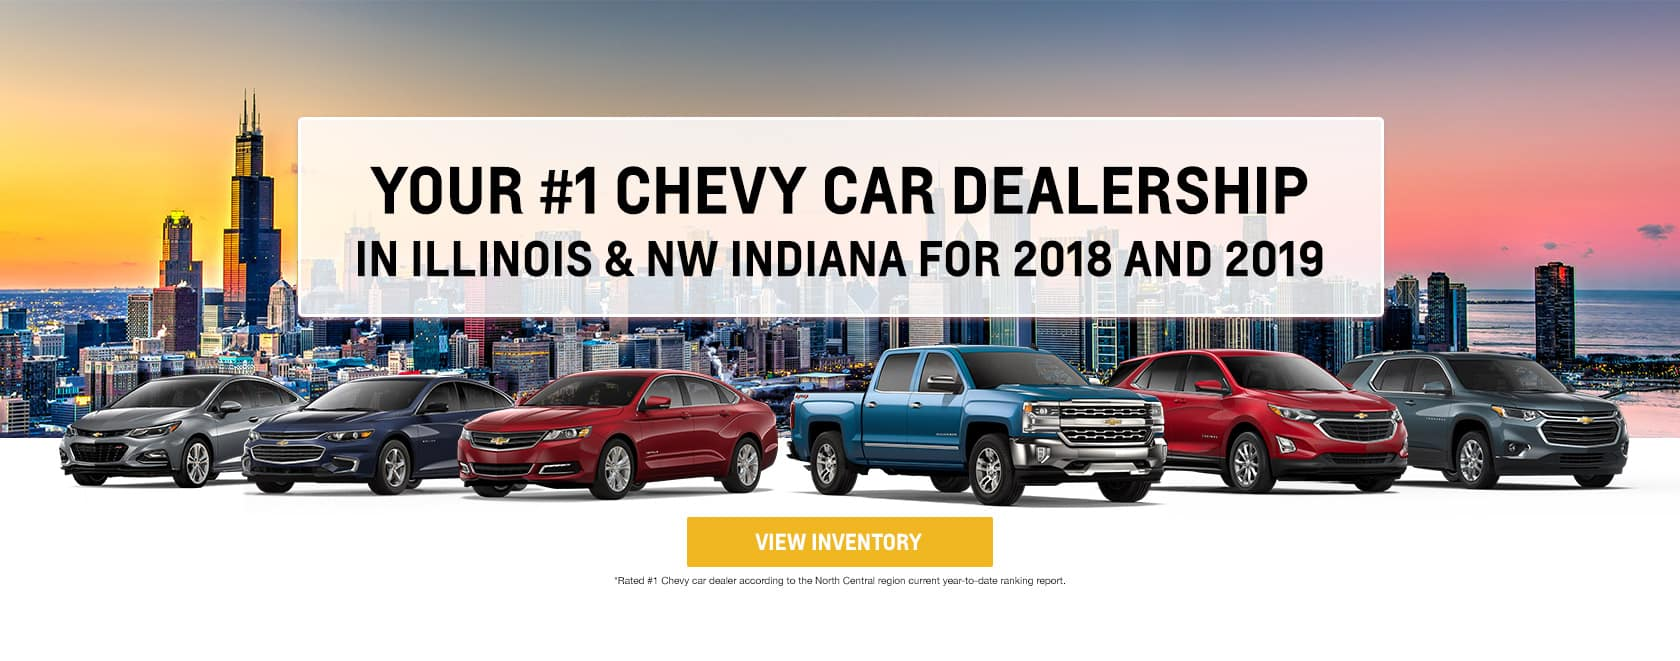 #1 Chevy Dealership